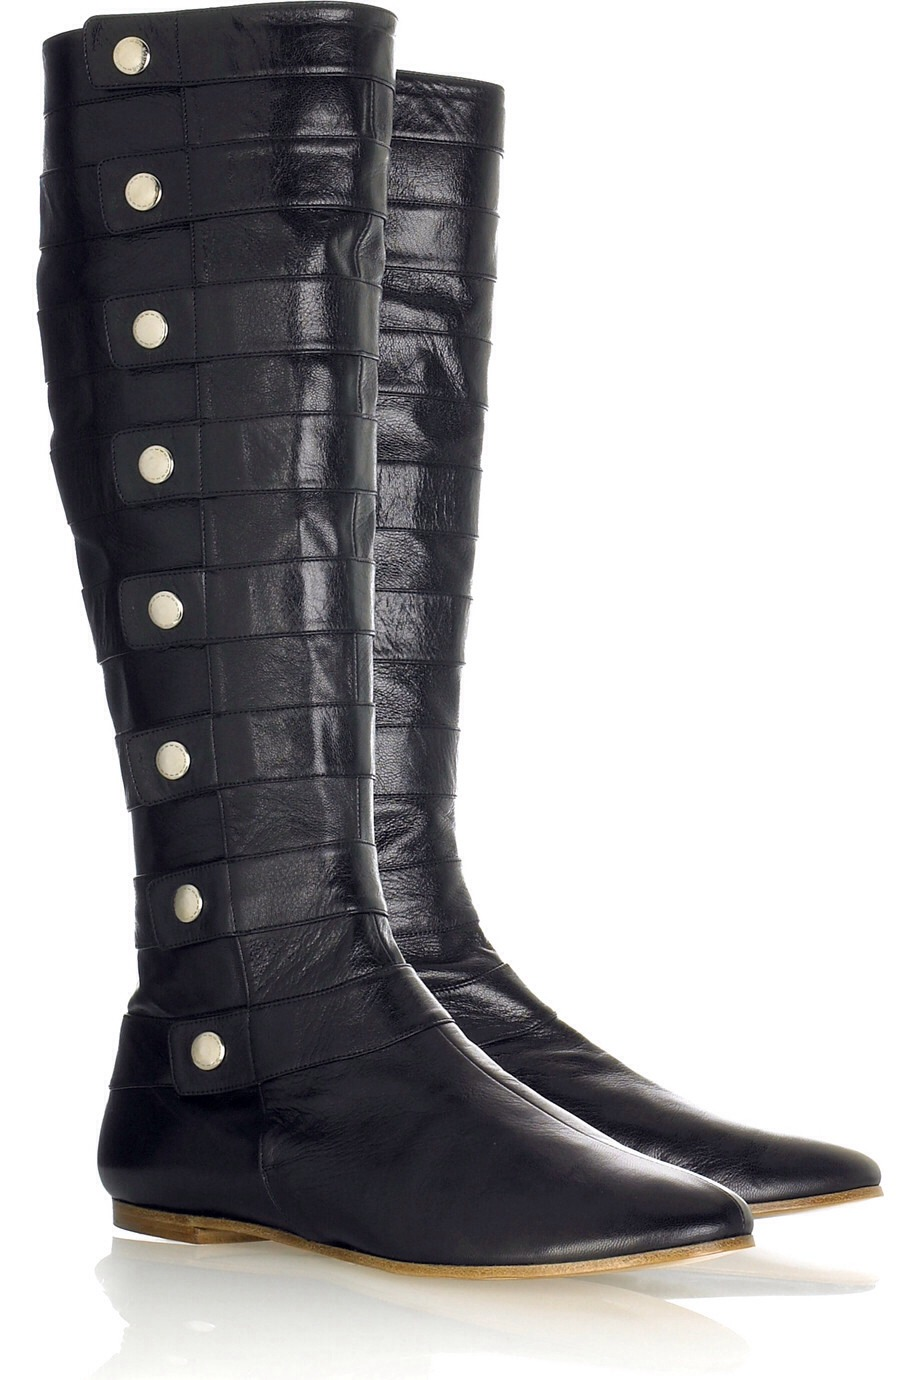 GOT SALT STAINS ON LEATHER BOOTS FROM SNOWMIX 1tbs